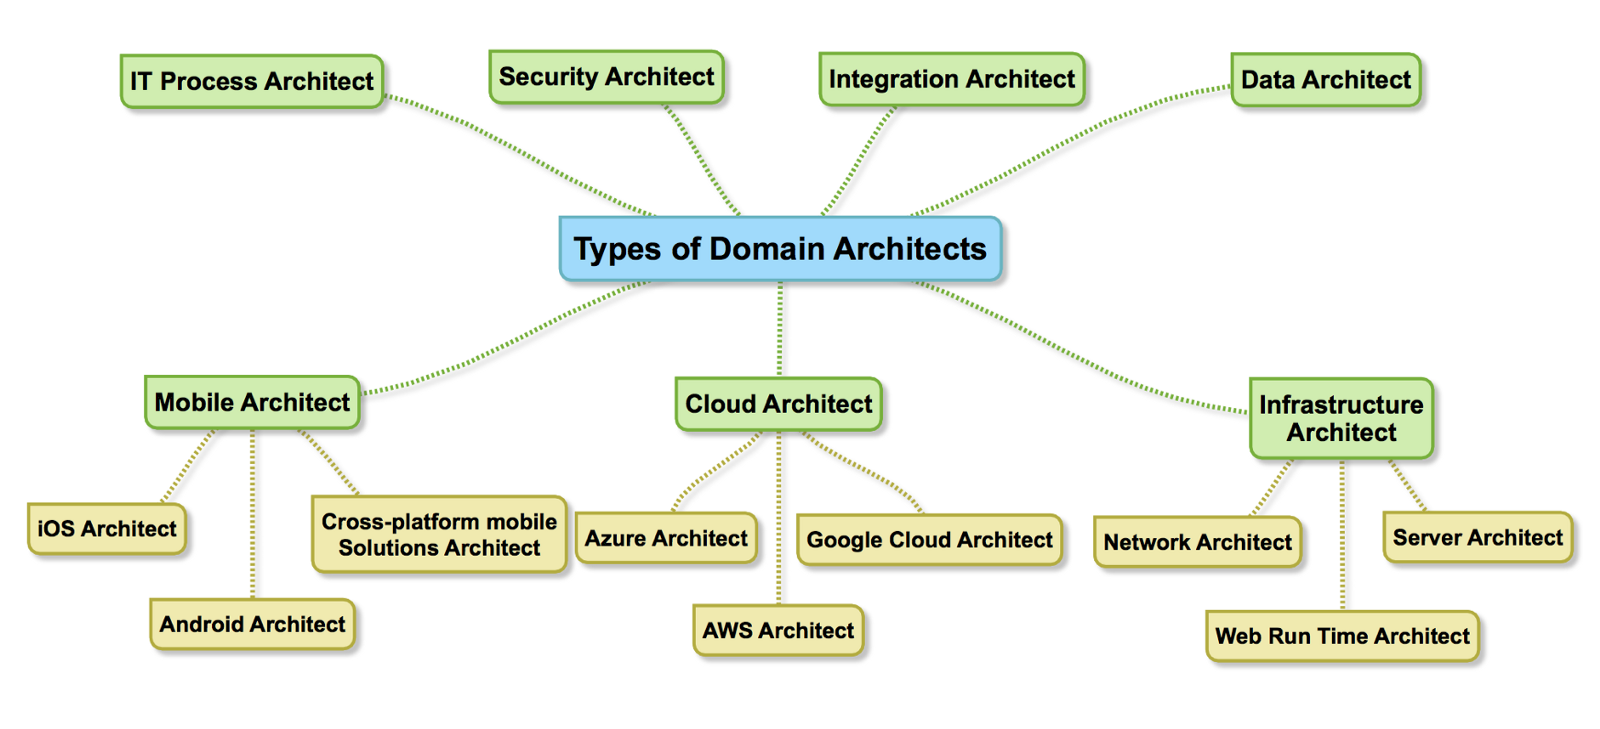 some types of domain architects